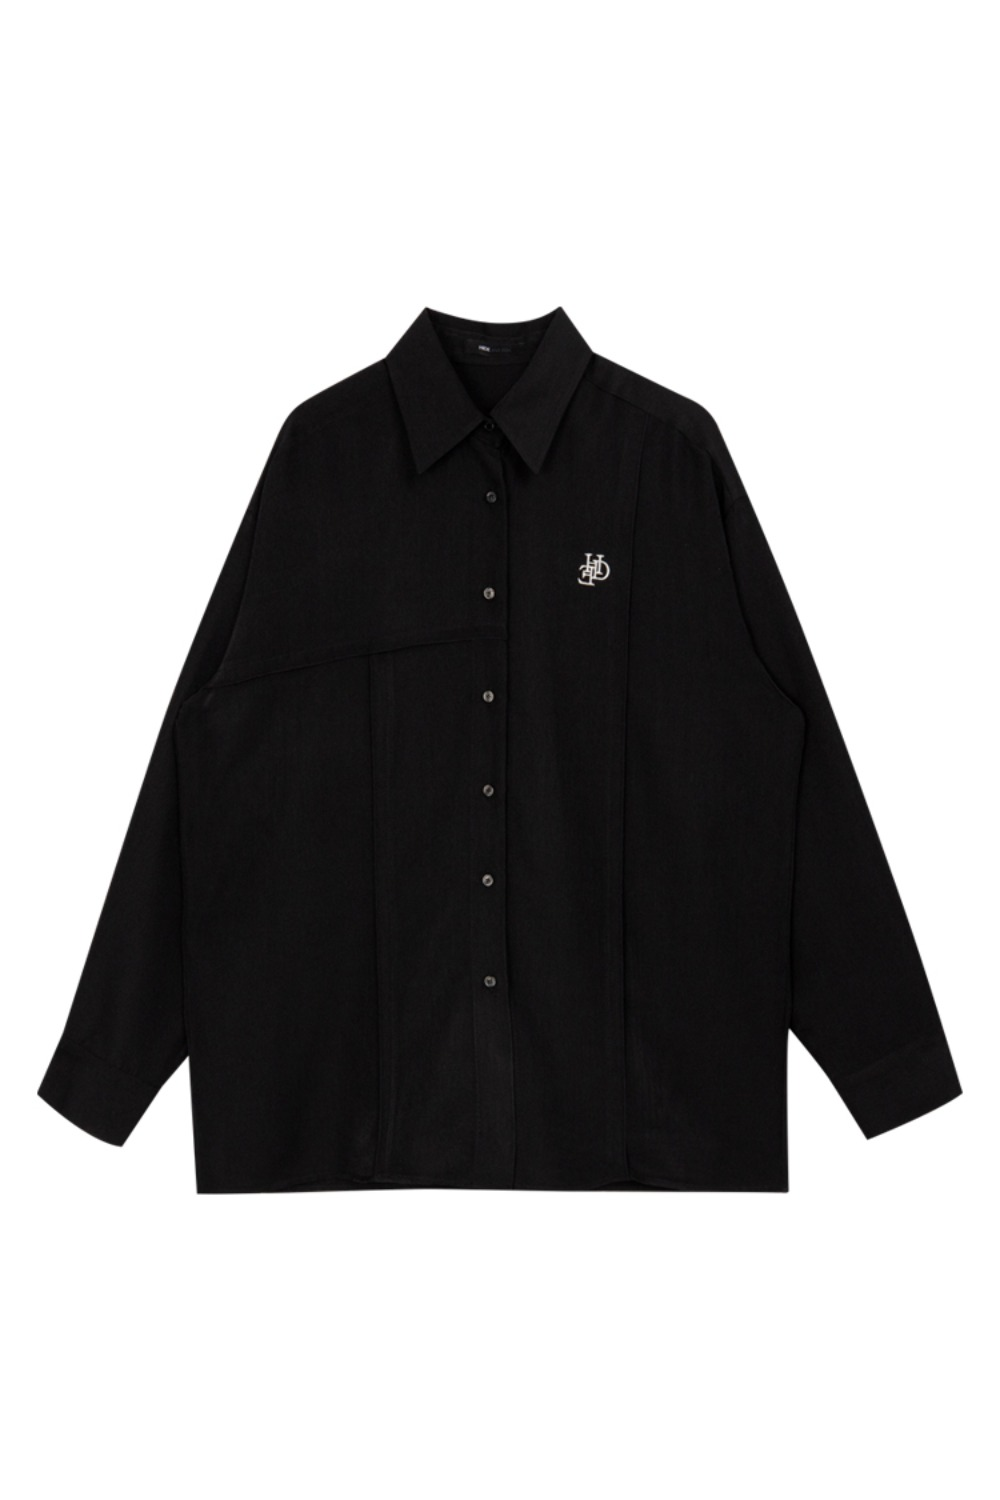 HIDE Logo Cutting Shirt BLACK